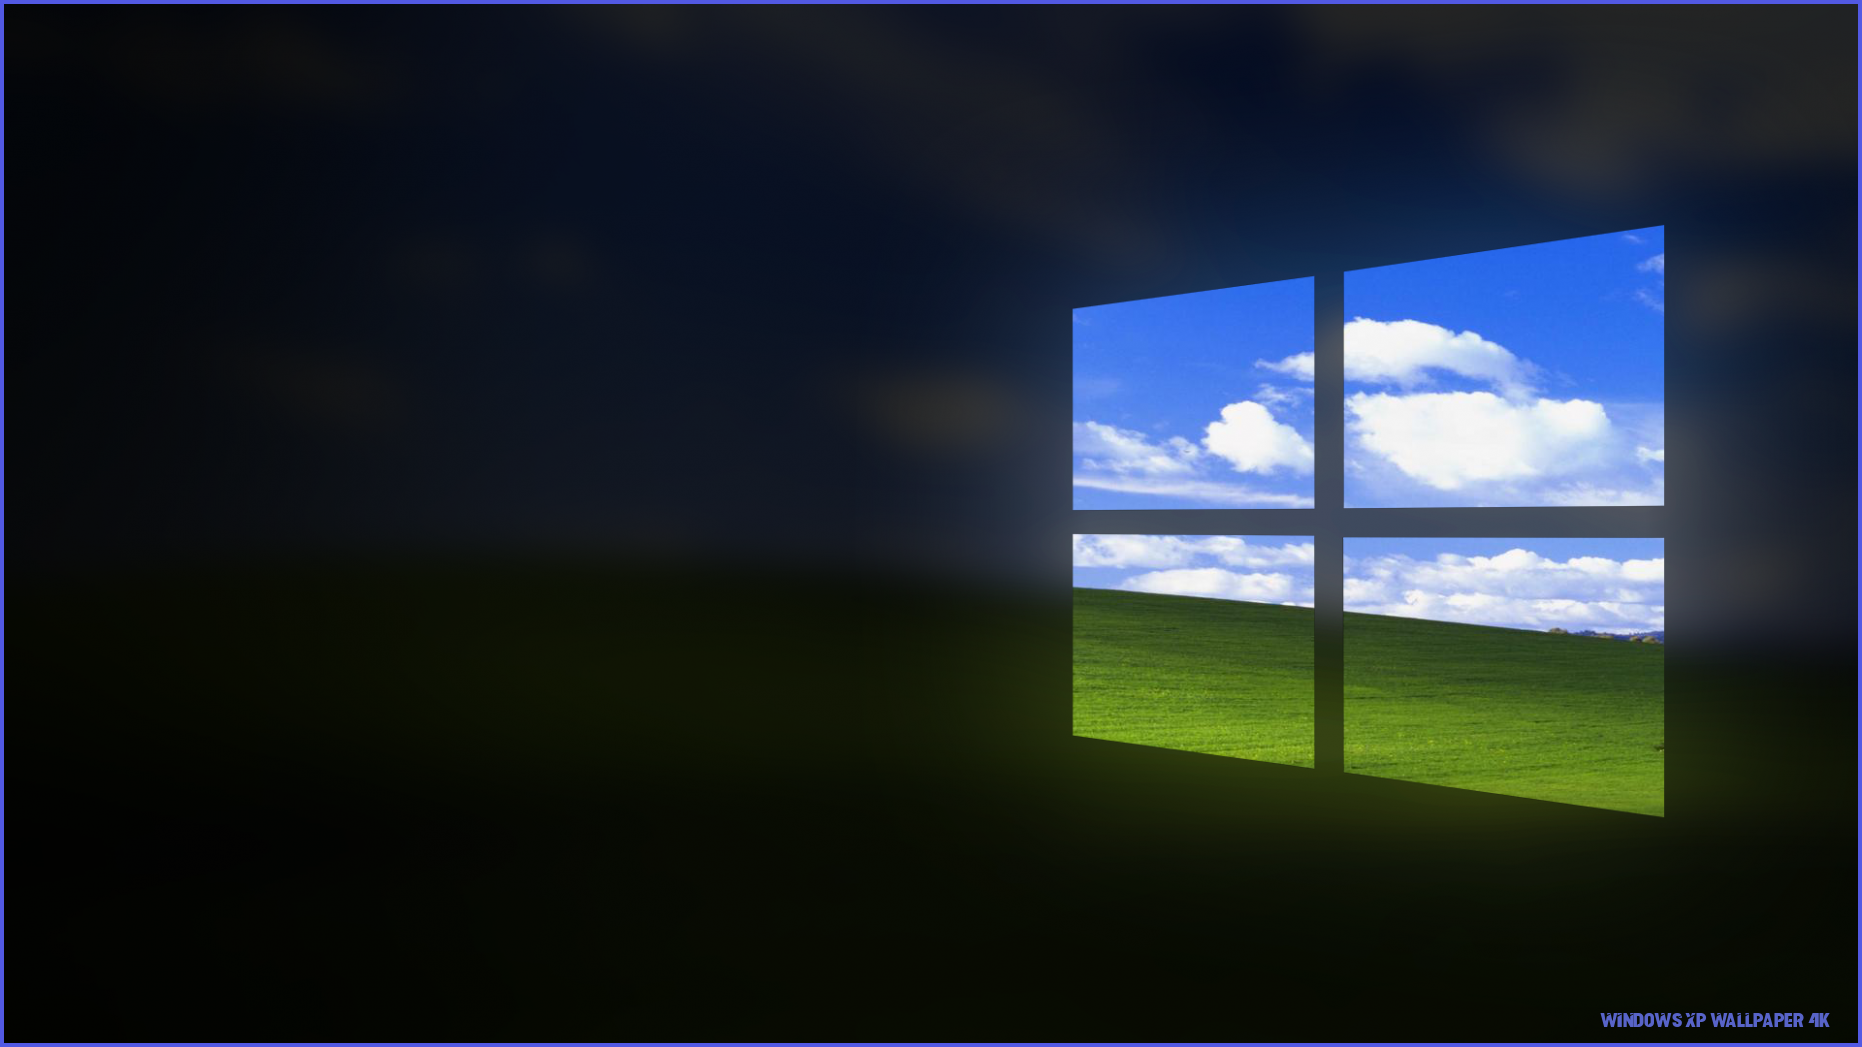 8 Reasons Why People Love Windows Xp Wallpaper 8k Windows Xp Wallpaper 8k Https Wa Windows Wallpaper Cool Desktop Wallpapers Desktop Wallpapers Backgrounds